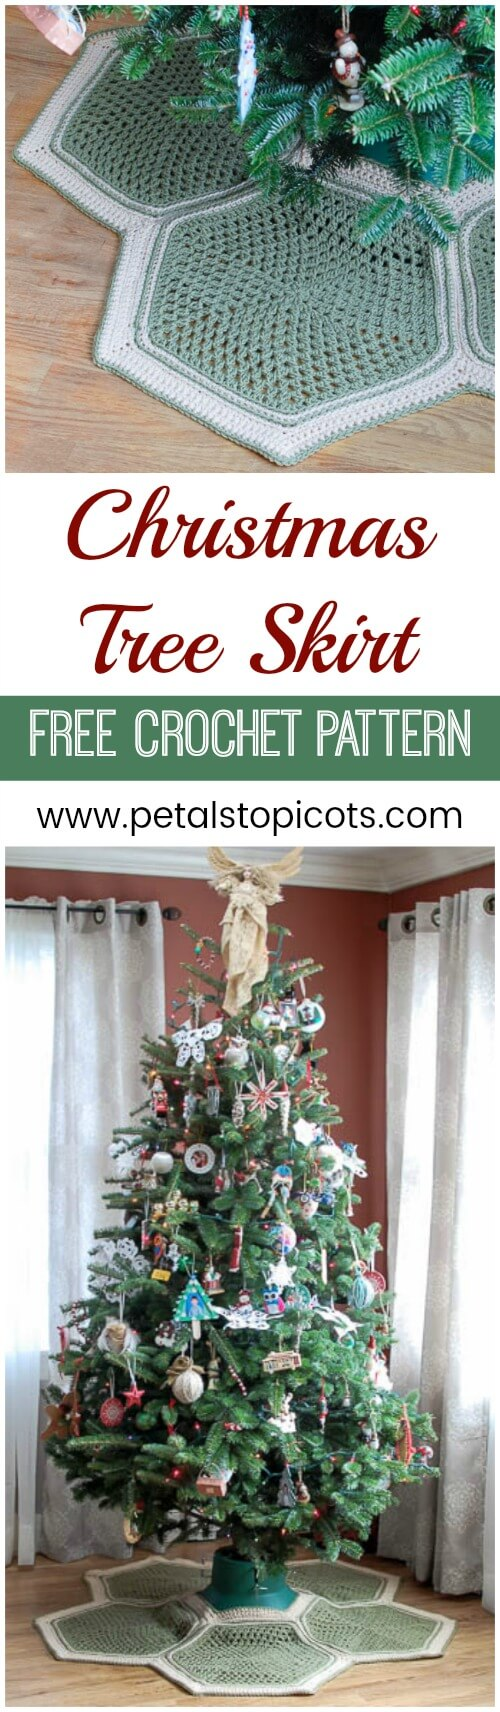 Granny Hexagon Crochet Tree Skirt Petals To Picots